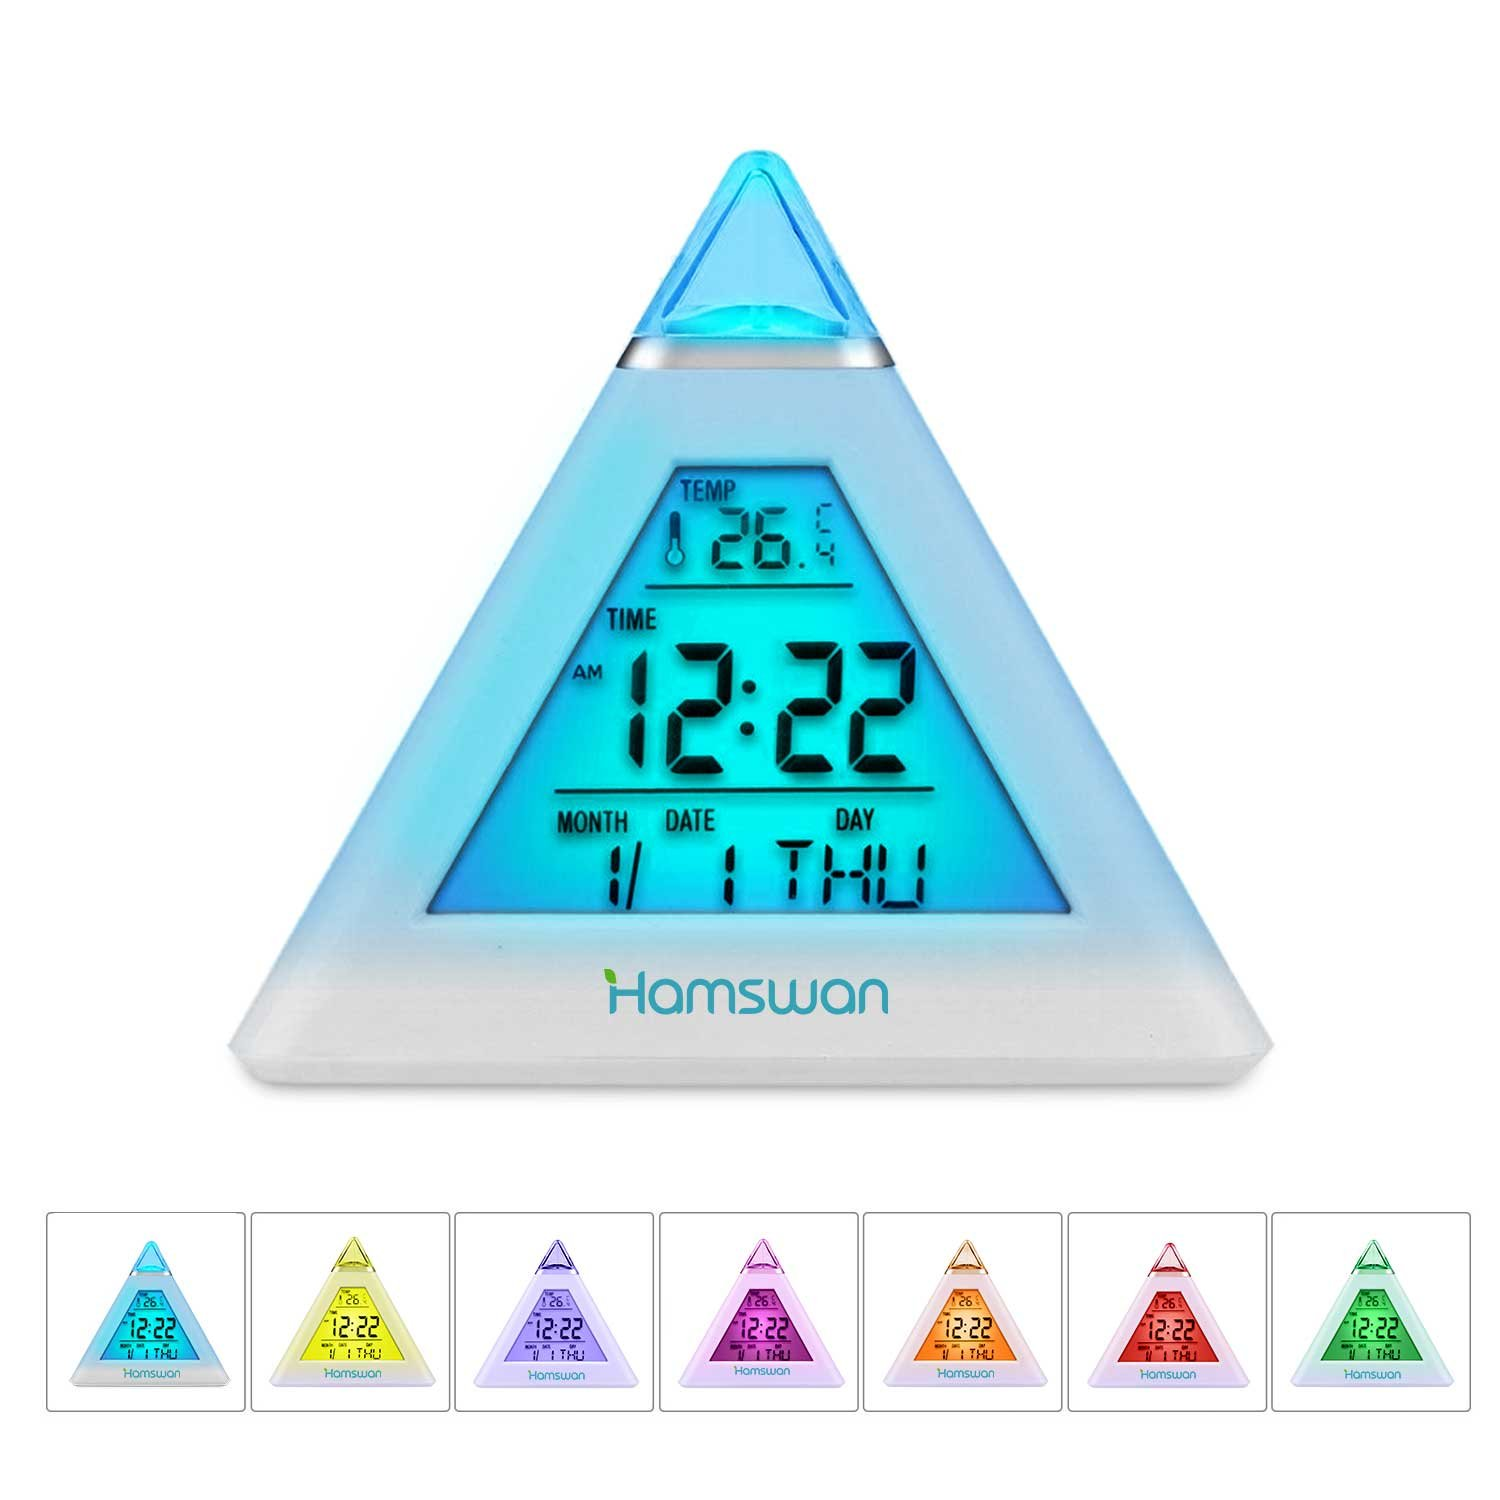 HAMSWAN Simple Digital Alarm Clock, Desk Bedside Clocks 7 LED Color Change Pyramid with Temperature, Alarm and Sleeping Function for Kids